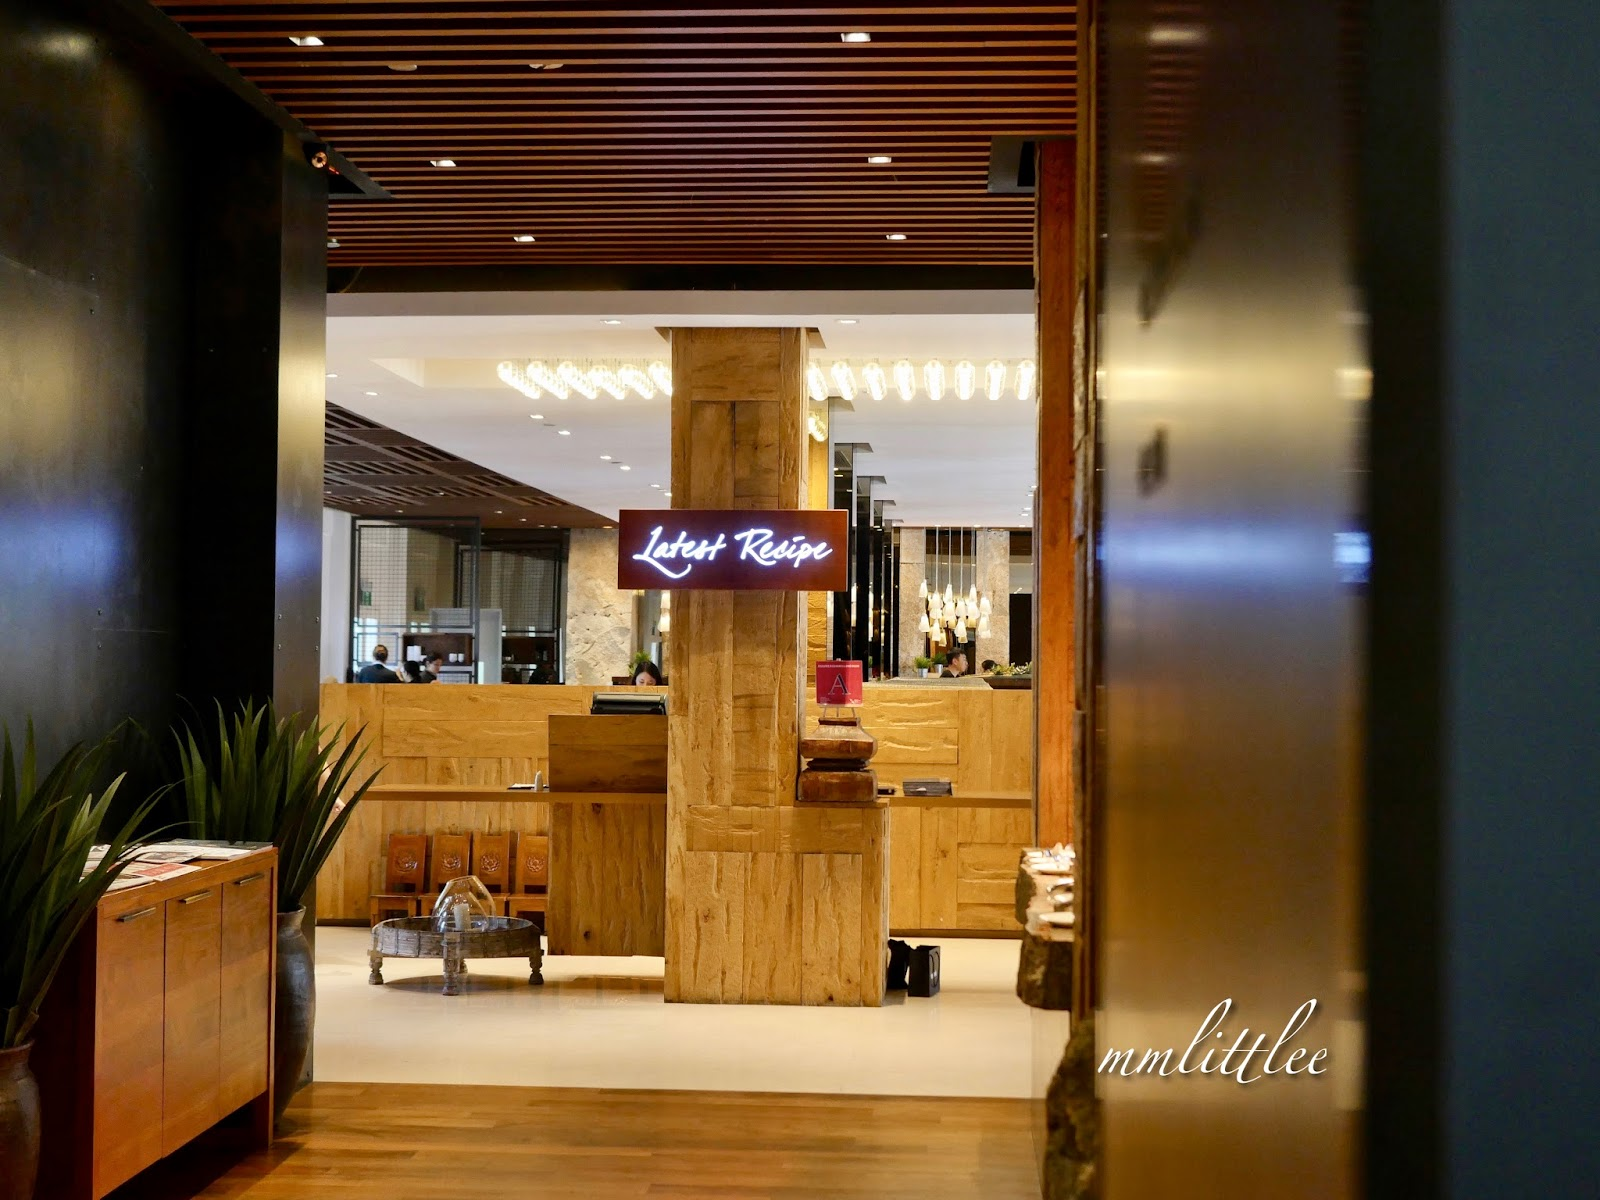 Le Mridien Singapore Sentosa The Merlion Suite For Families A Wings Of Time Show 1940 Voucher Unlock Art With Meridien And National Gallery